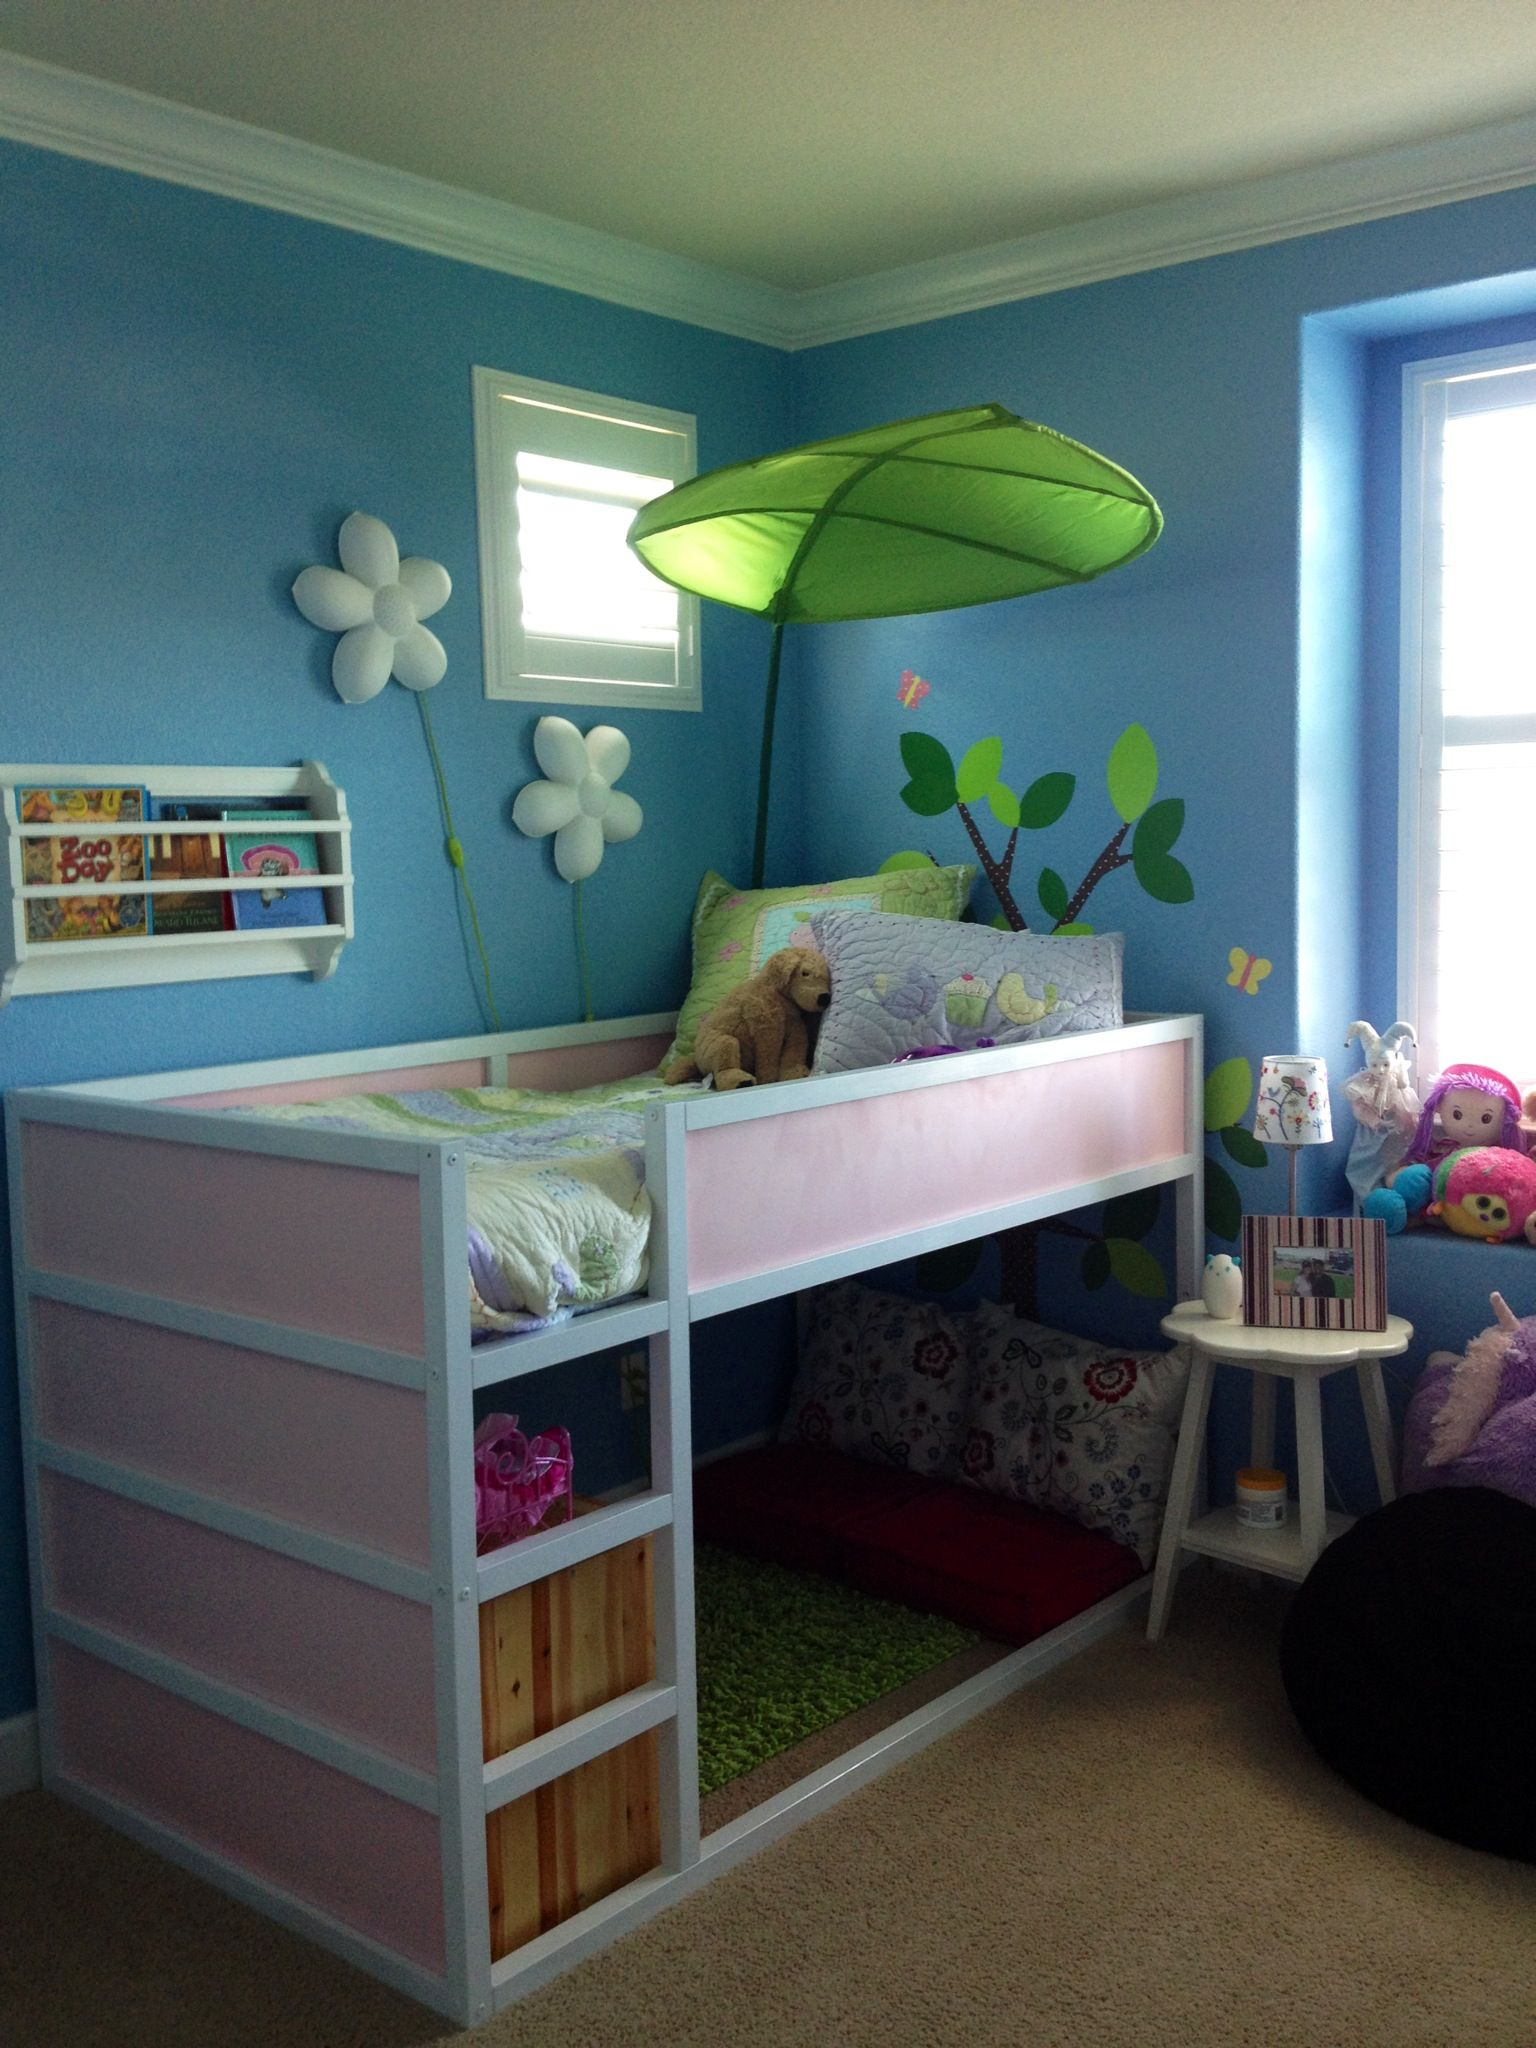 Kinderzimmer Ideen Ikea Kura Bed From Ikea With A Reading Nook Below Gianna Room Ideas